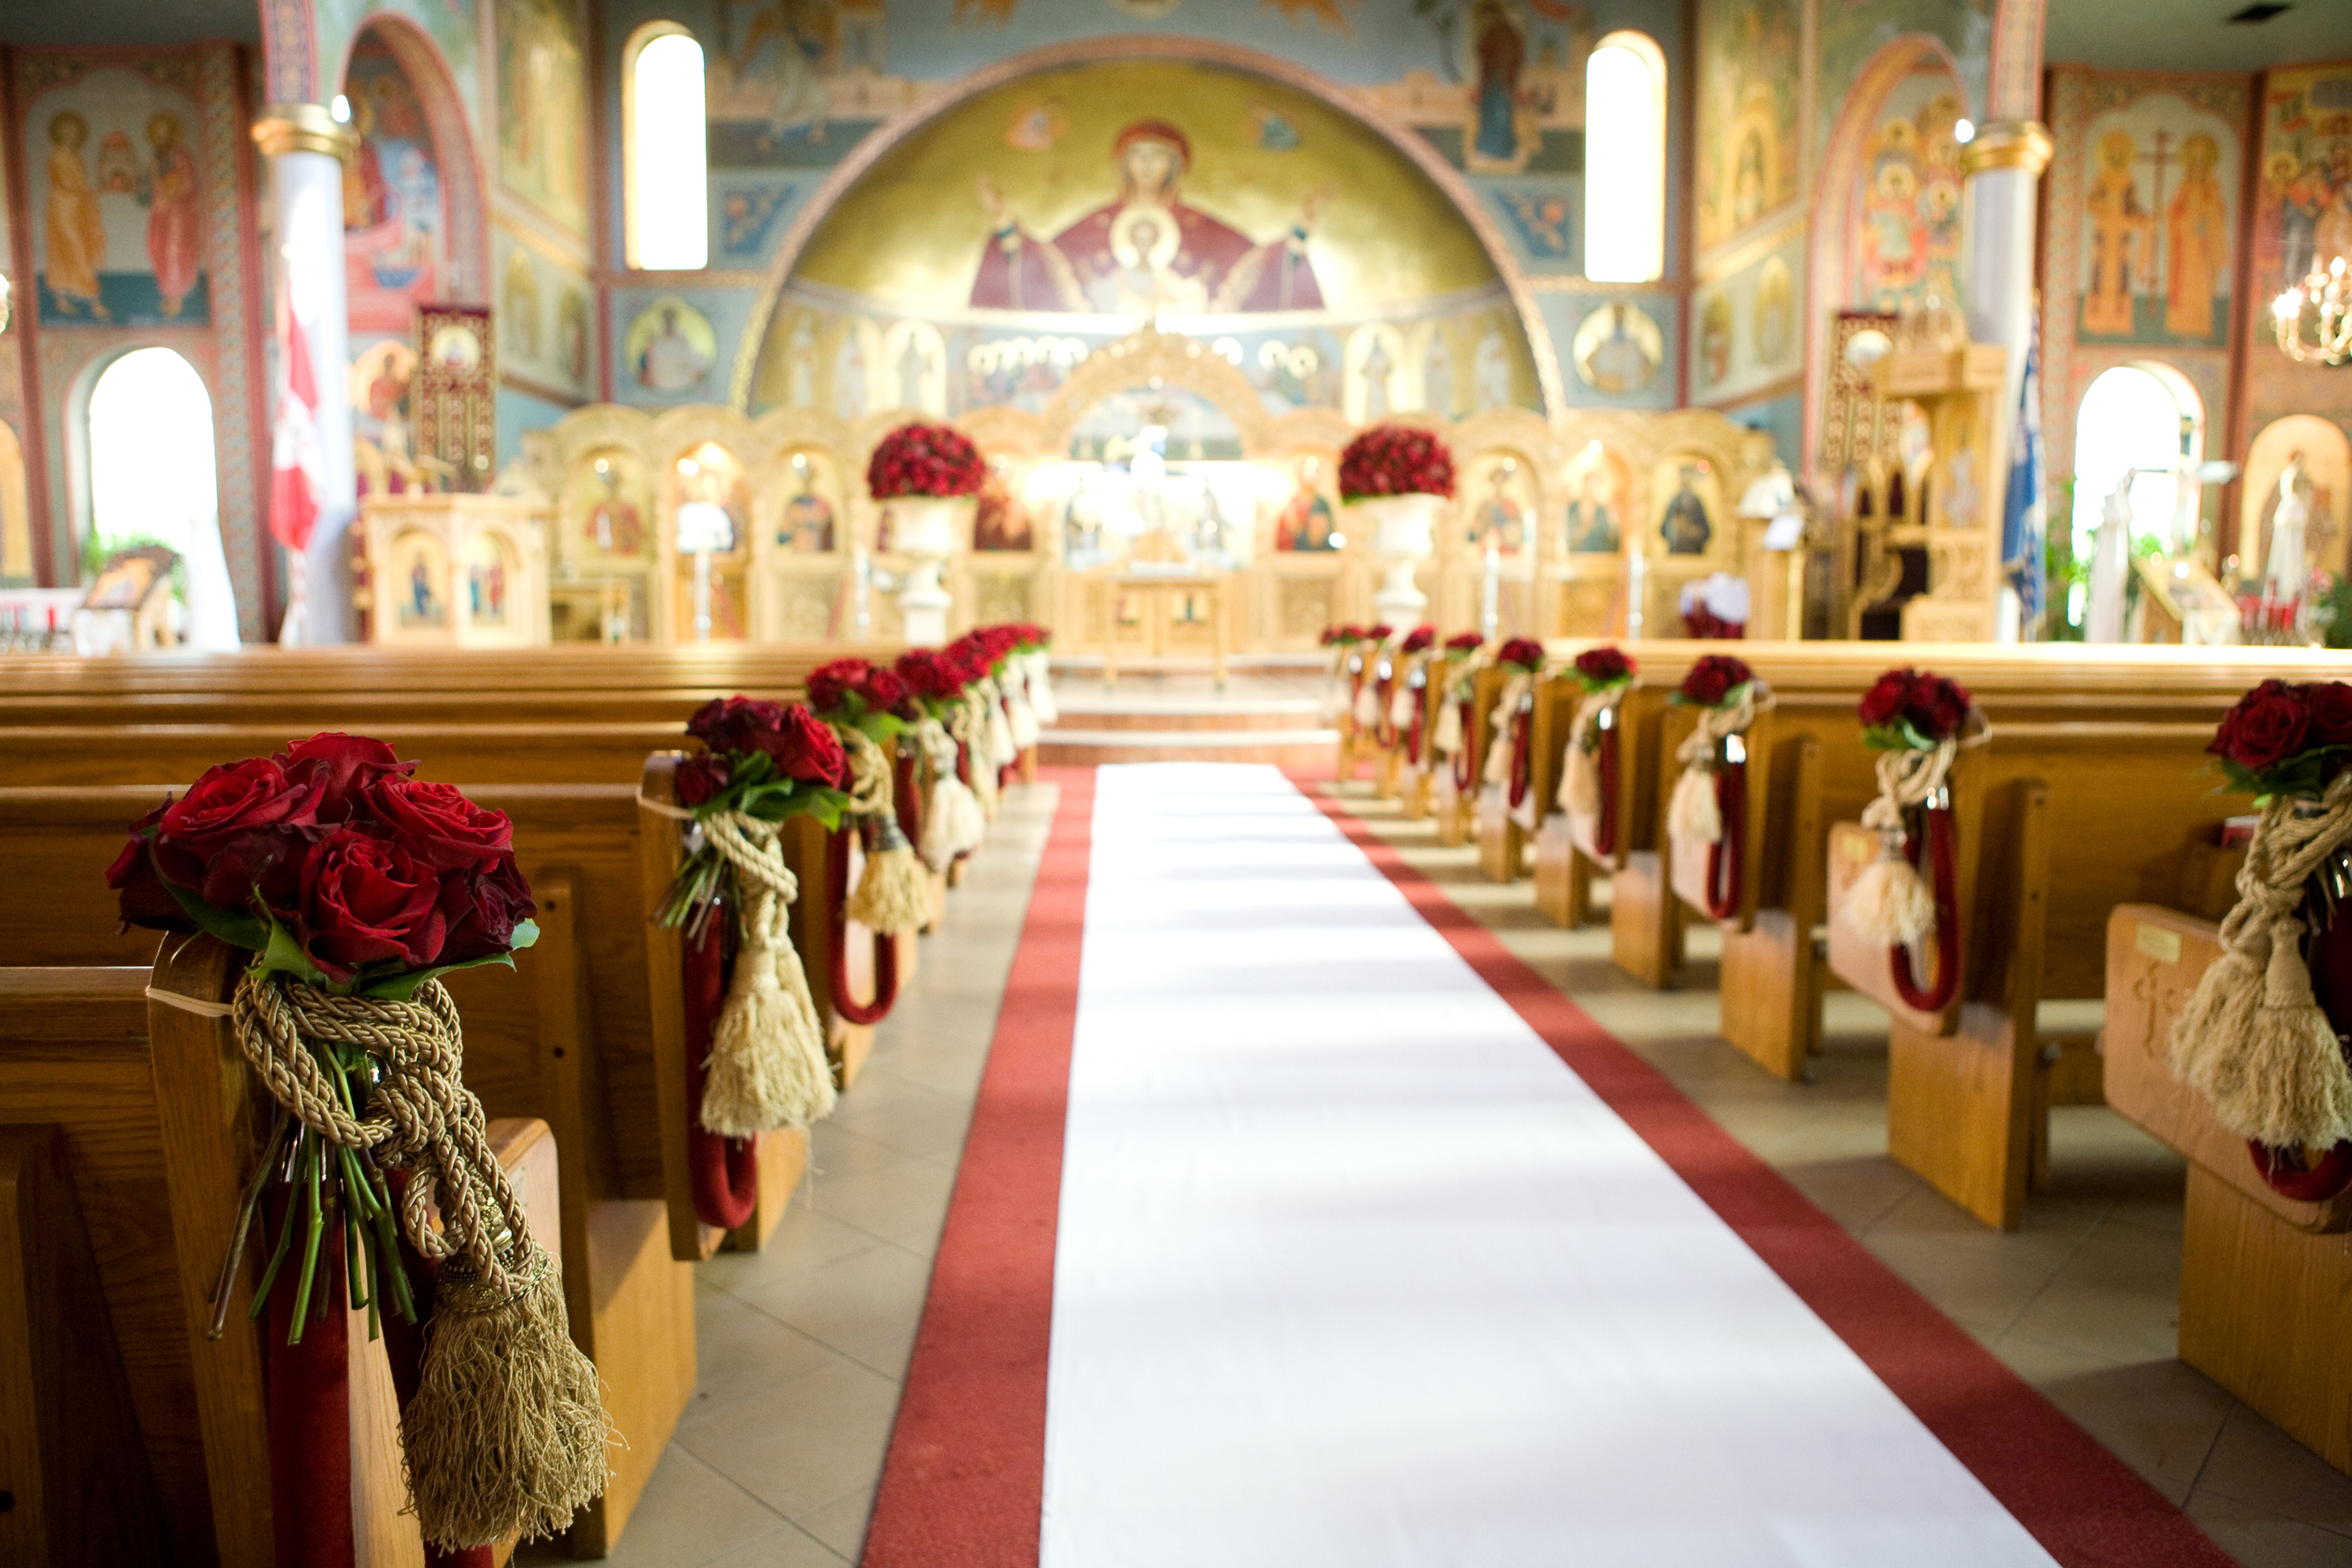 Ceremony, Flowers & Decor, Ceremony Flowers, Flowers, Wedding, Greek, Platinum events group, Orthodox